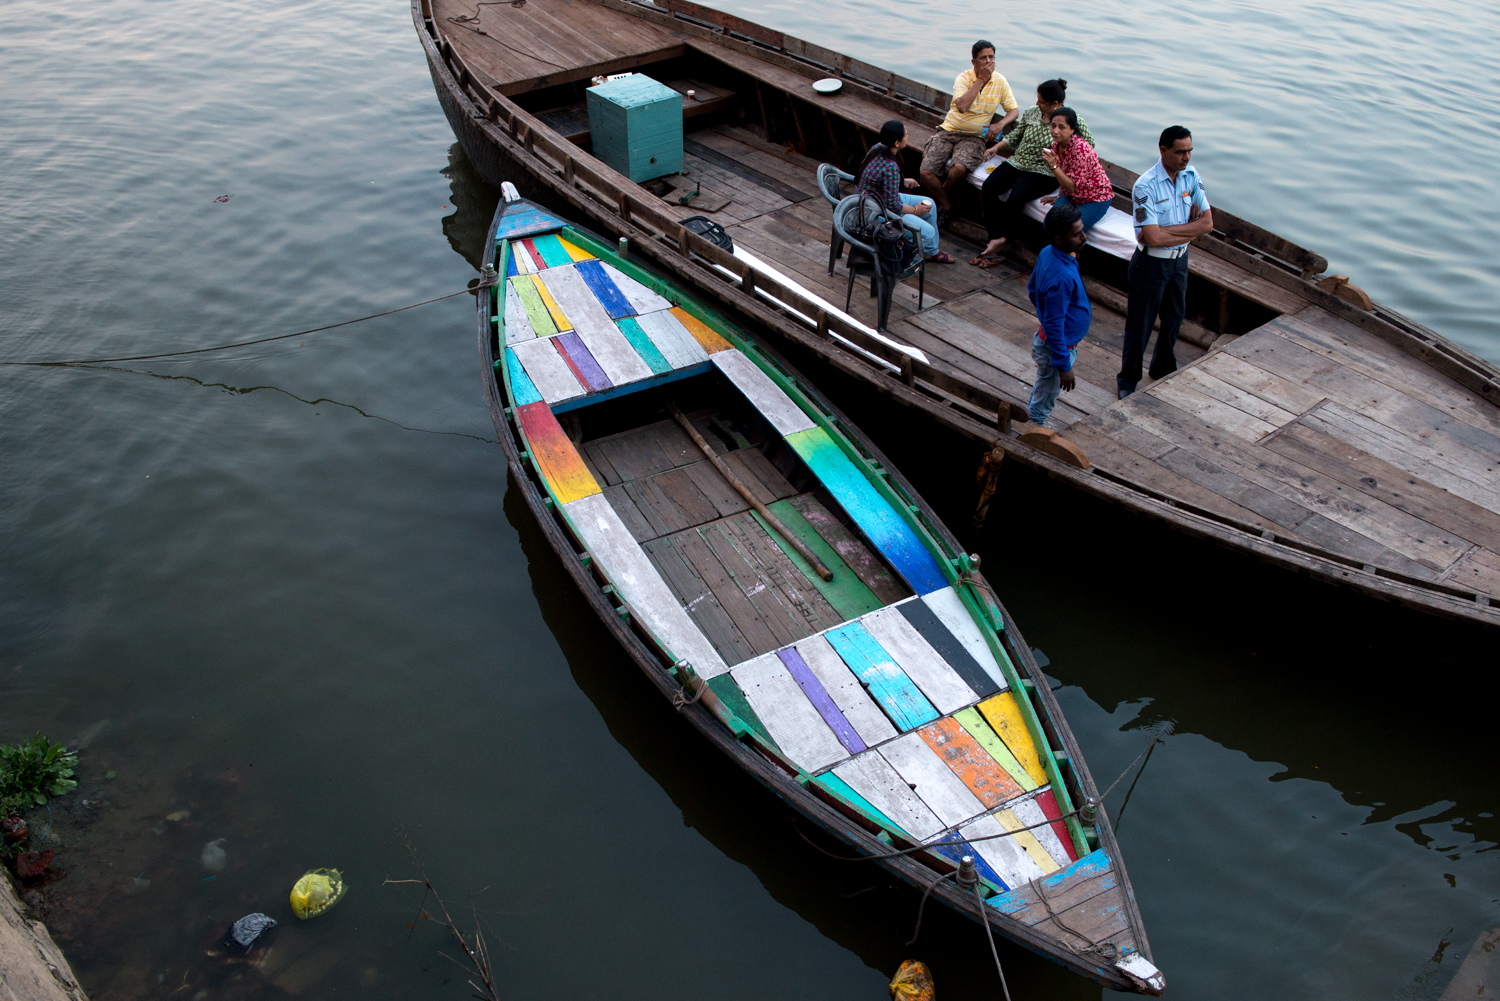 A colourful boat rests on the Ganges River - Varanasi, India.